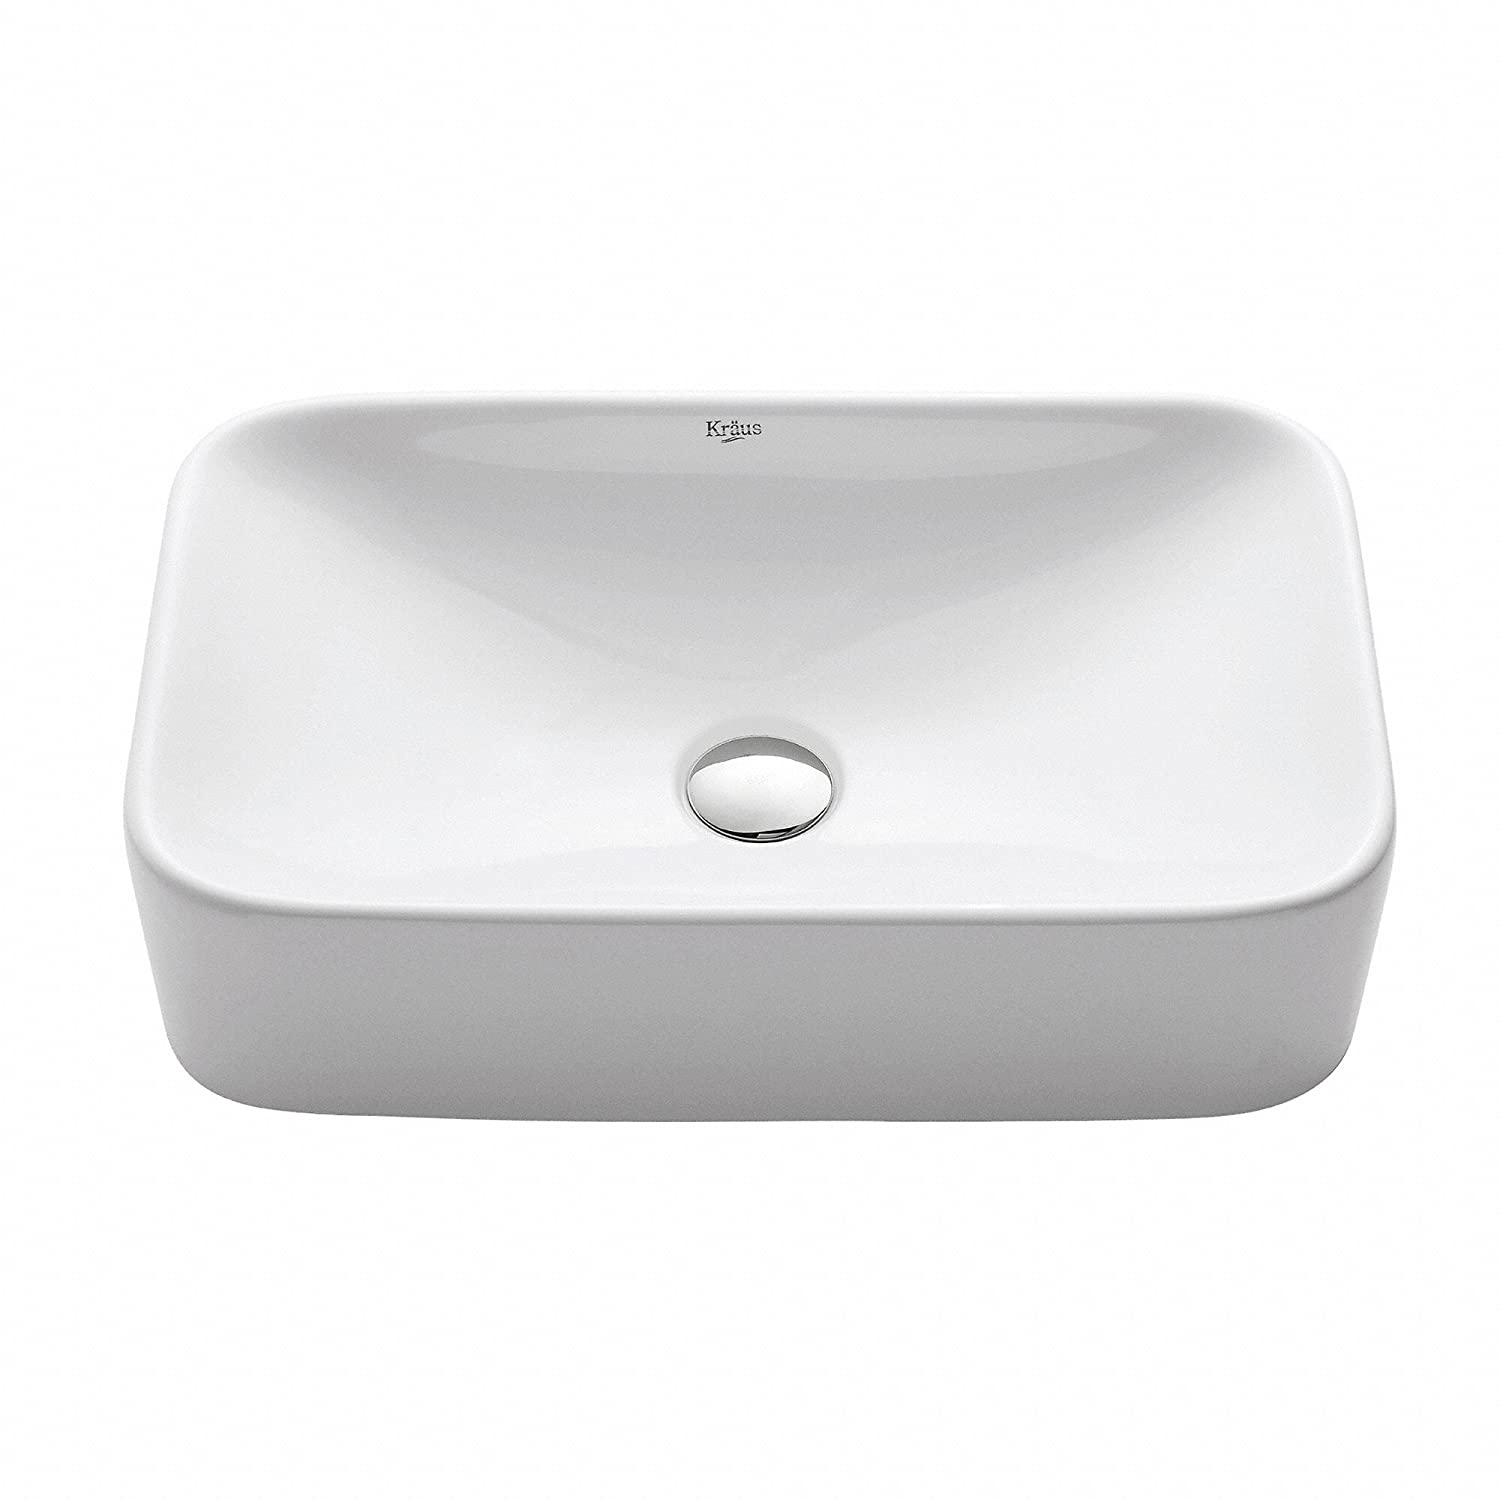 Bathroom available in 5 finishes vessel bathroom sinks msrp 425 - Kraus Kcv 122 White Rectangular Ceramic Bathroom Sink Vessel Sinks Amazon Com